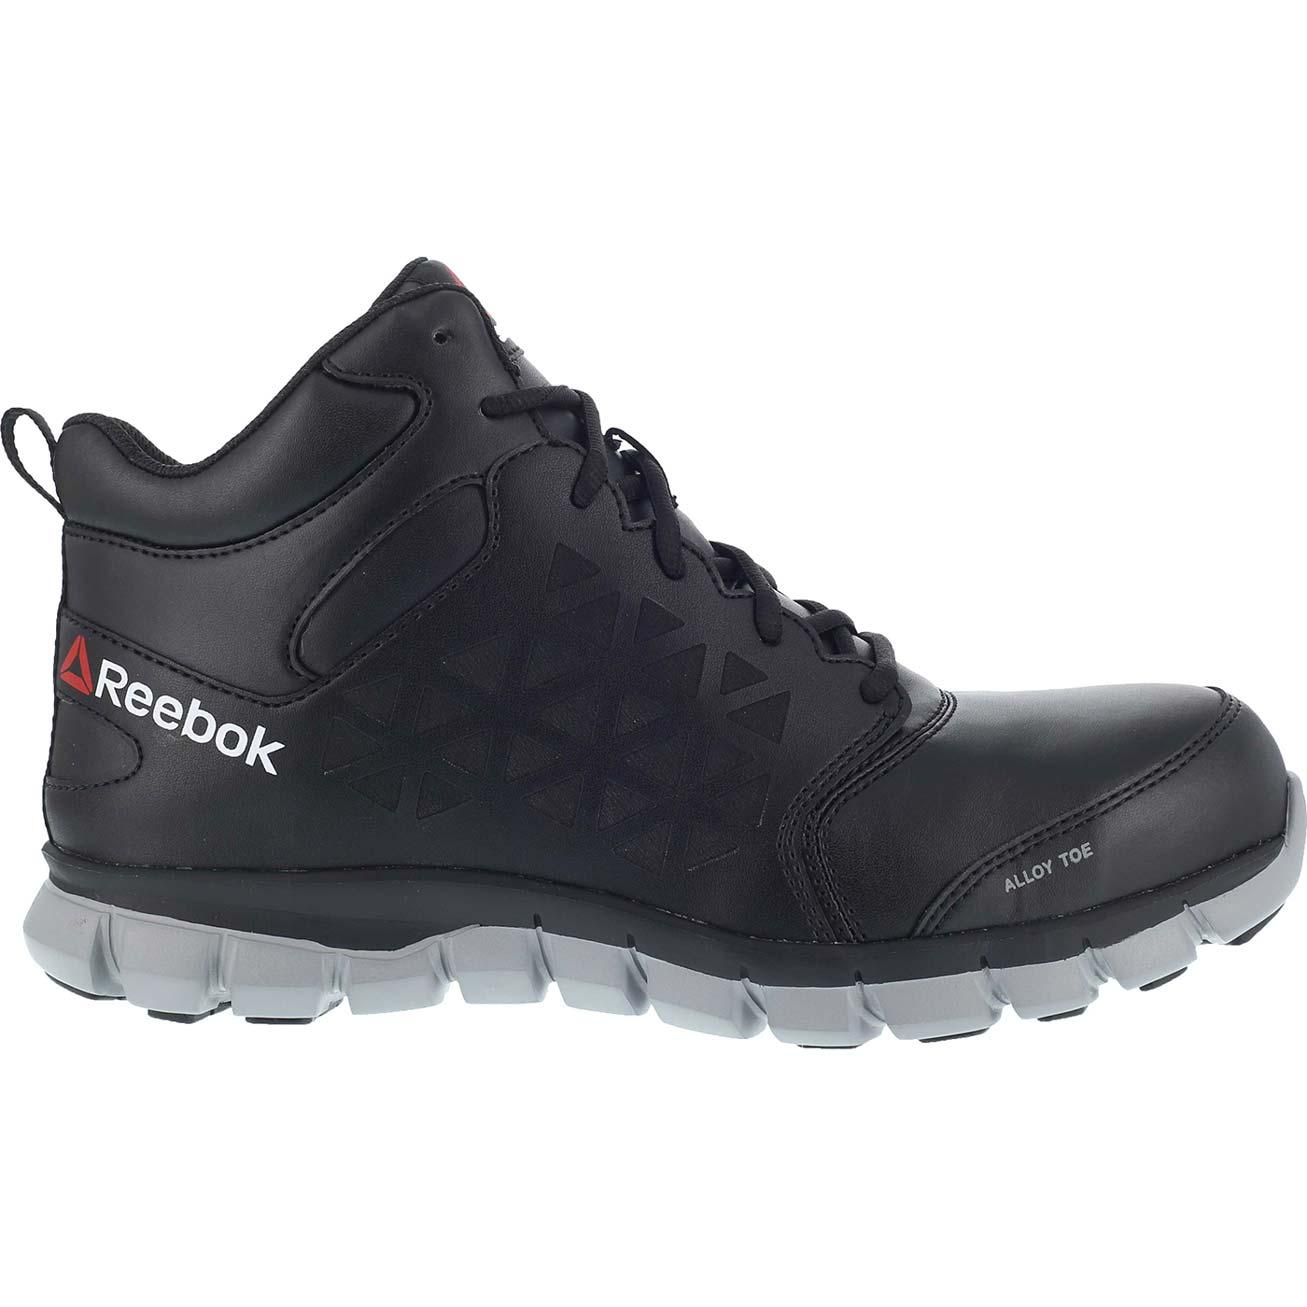 Reebok Lightweight Men S Shoe